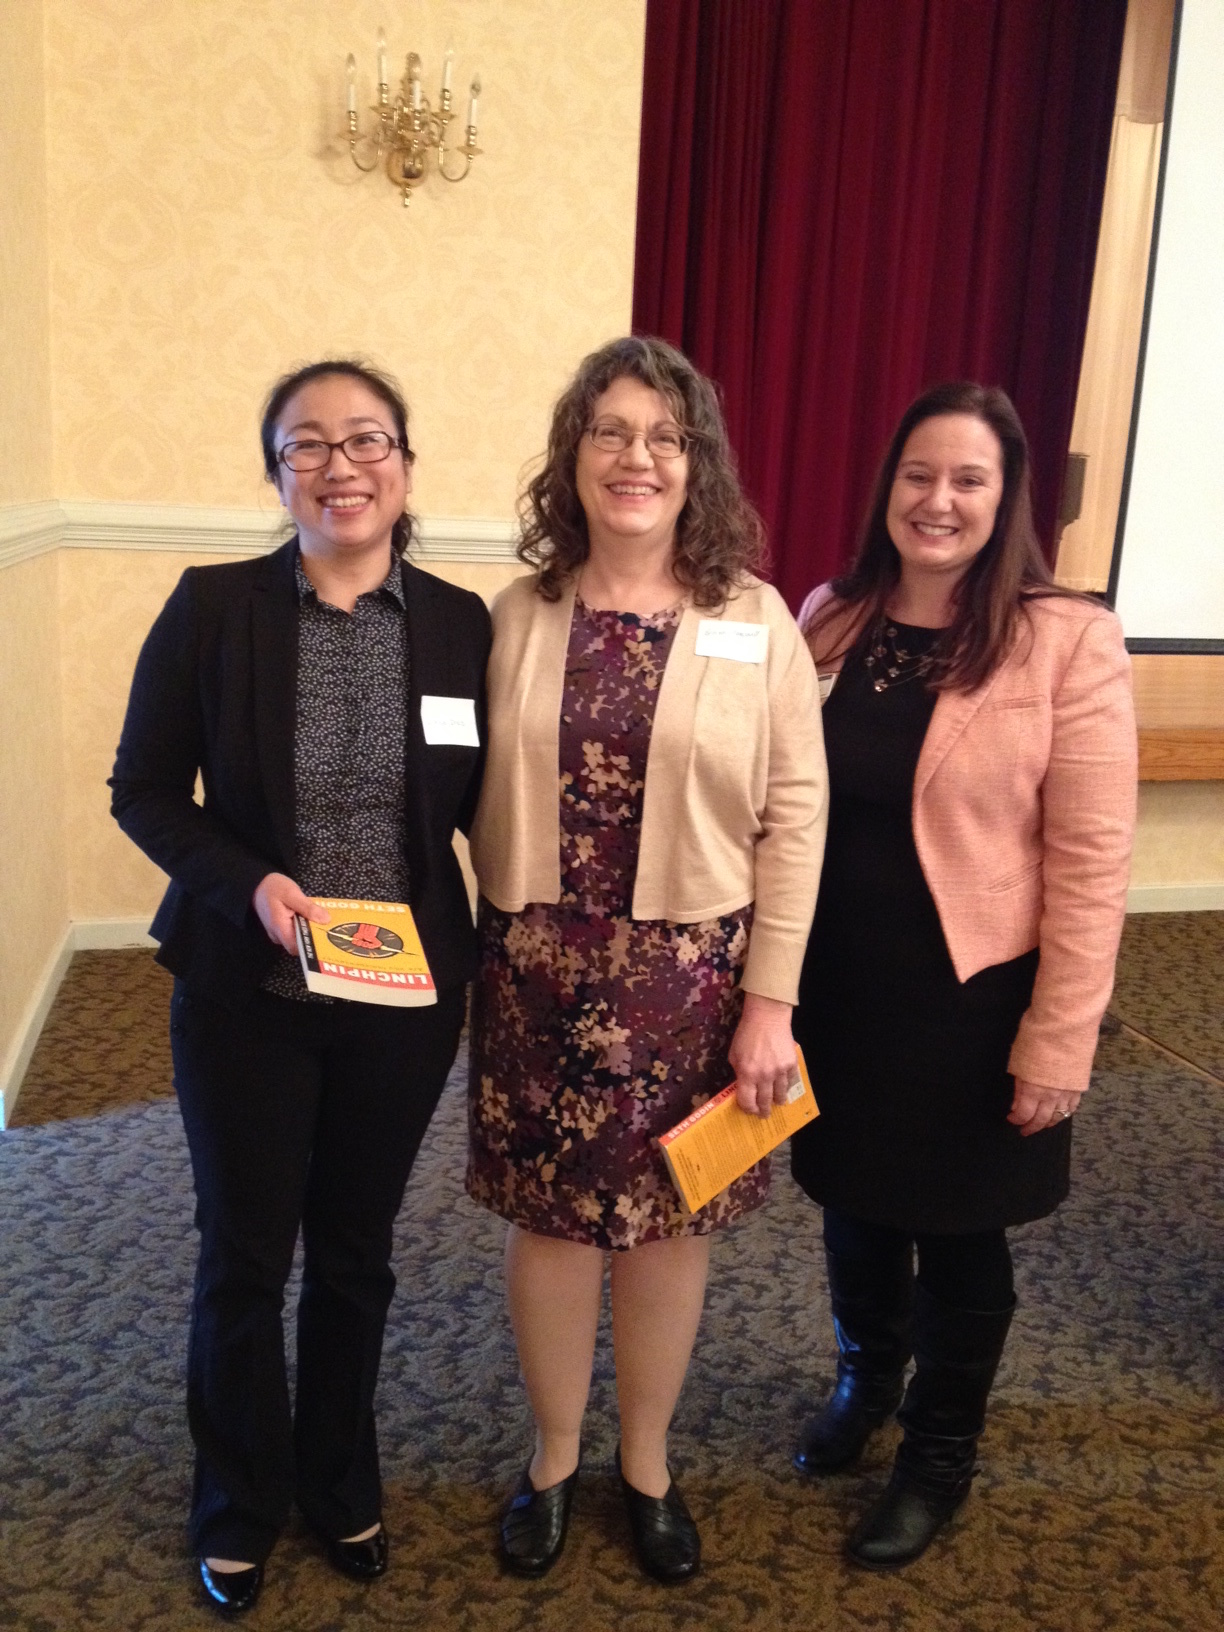 Lihua Zhao and Virginia Campbell with RPWF President Net Stangle-Castor